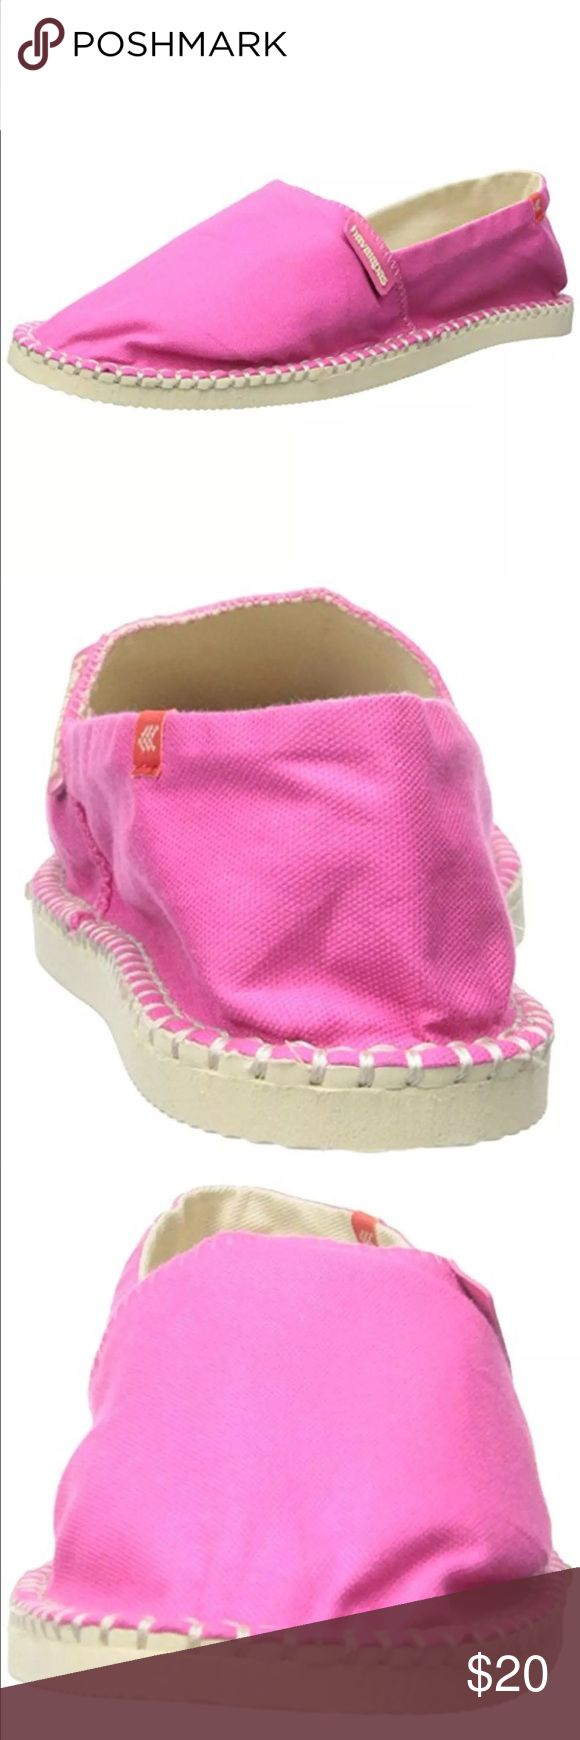 New Havaianas Womens Origine II Pink Espadrilles New Havaianas 7177 Womens Origine II Pink Flat Espadrilles Shoes 7 Medium  	•	Manufacturer: Havaianas 	•	Size: 7 Medium (B,M) 	•	Size Origin: US 	•	Manufacturer Color: Fuchsia 	•	Retail: $38.00 	•	Condition: New with box 	•	Style Type: Espadrilles 	•	Collection: Havaianas 	•	Shoe Width: Medium (B, M) 	•	Heel Height: 1/2 Inches 	•	Platform Height: 1/2 Inches 	•	Closure: Slip On 	•	Material: Textile/Man Made 	•	Fabric Type: Canvas Havaianas…